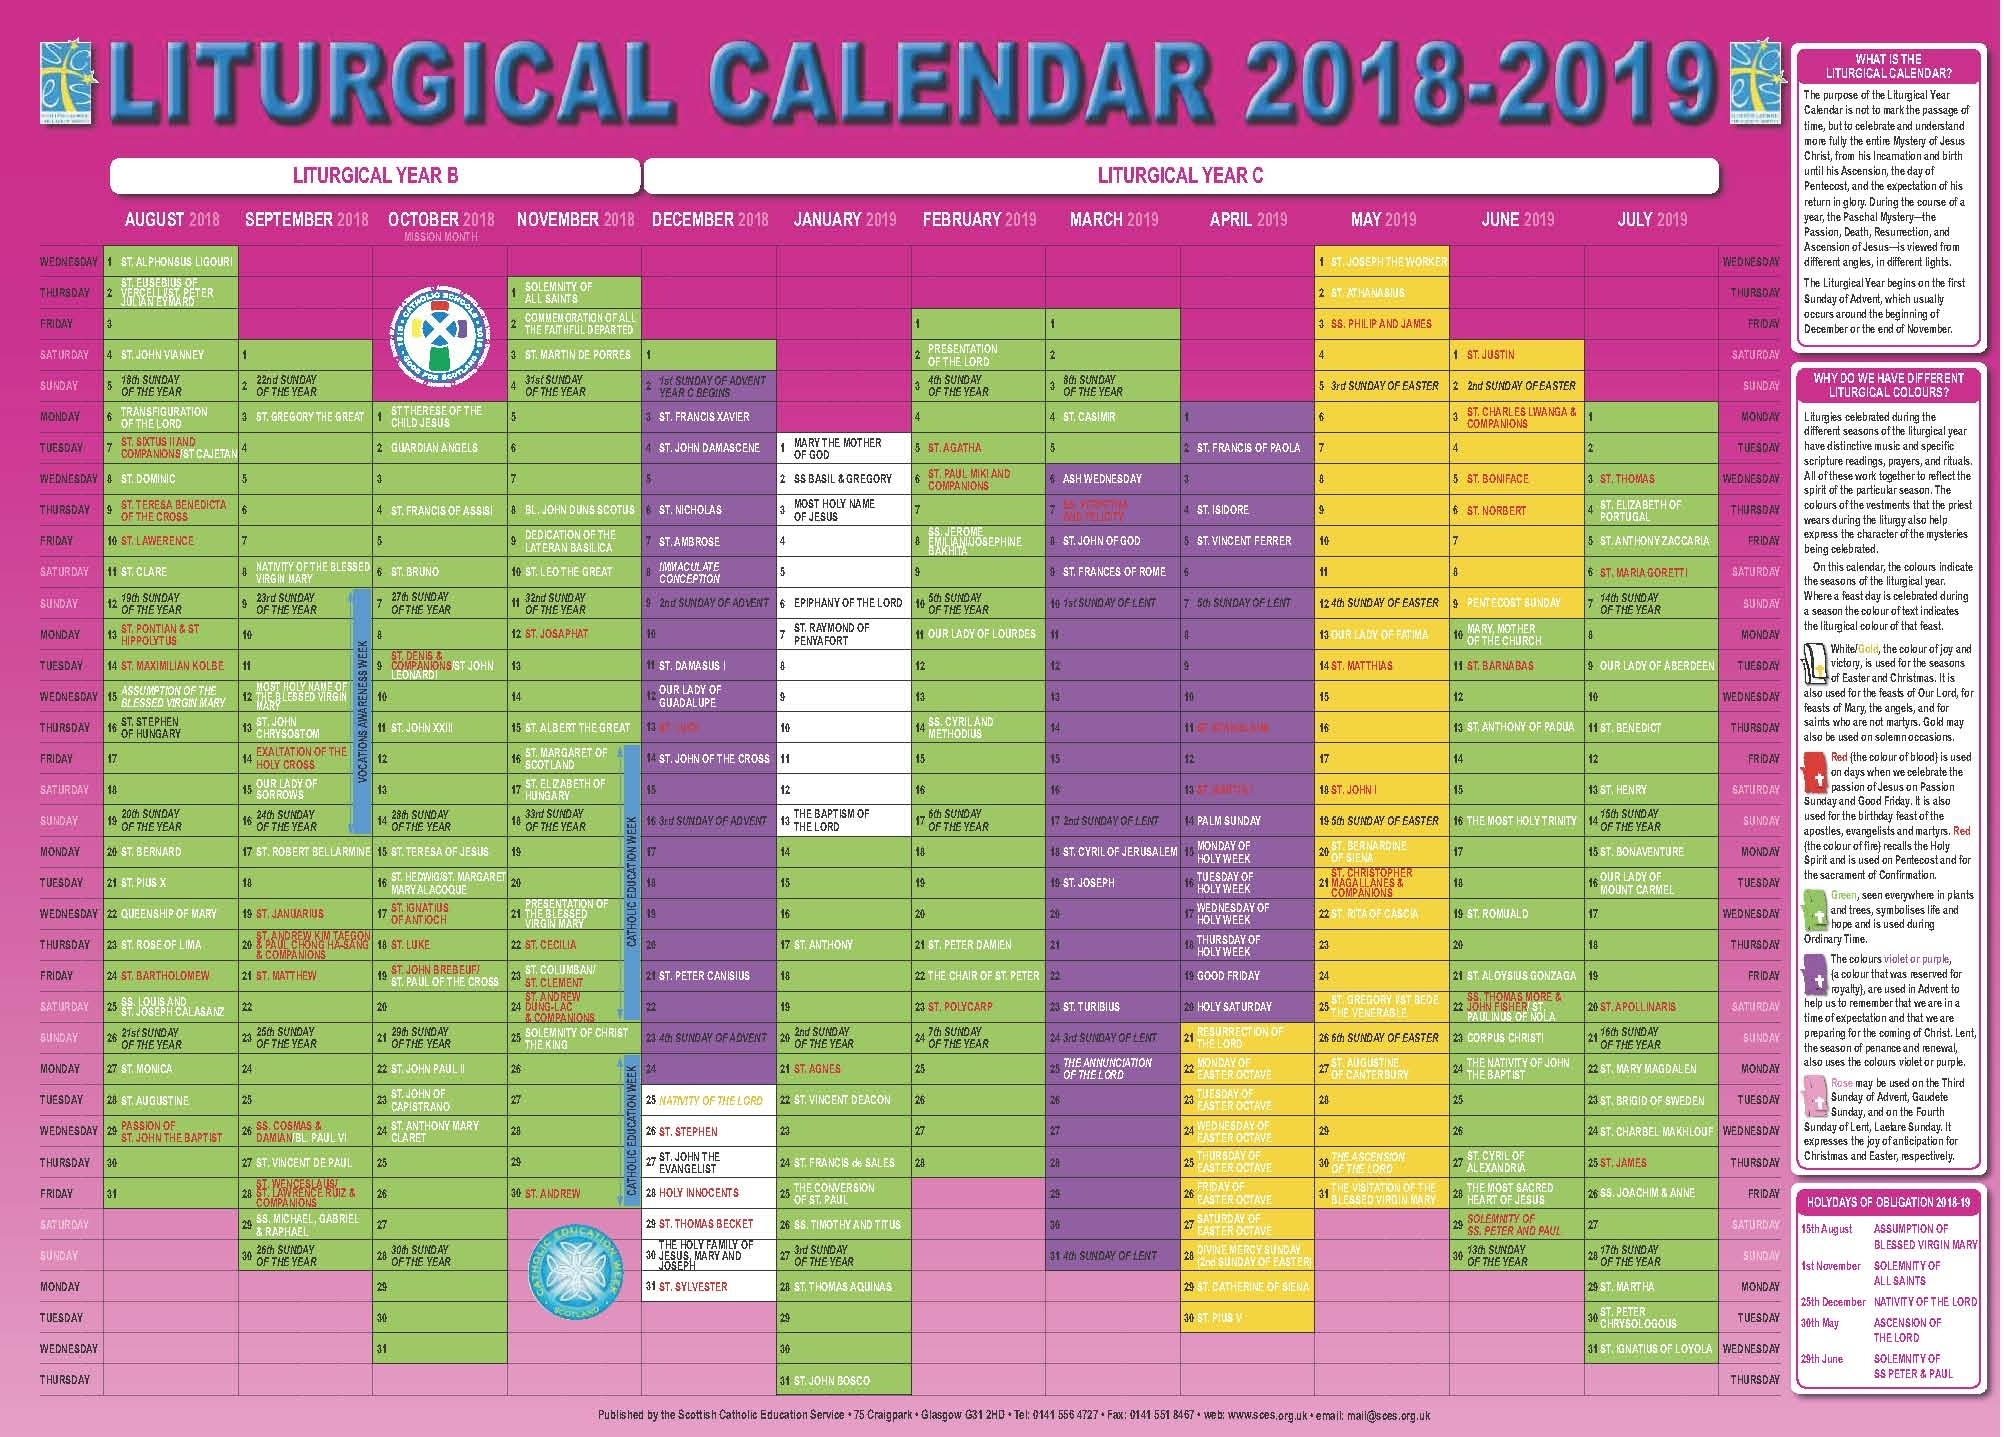 Catholic Liturgical Calendar 2020 Pdf  Calendar Inspiration regarding Liturgical Calendar 2020 Printable